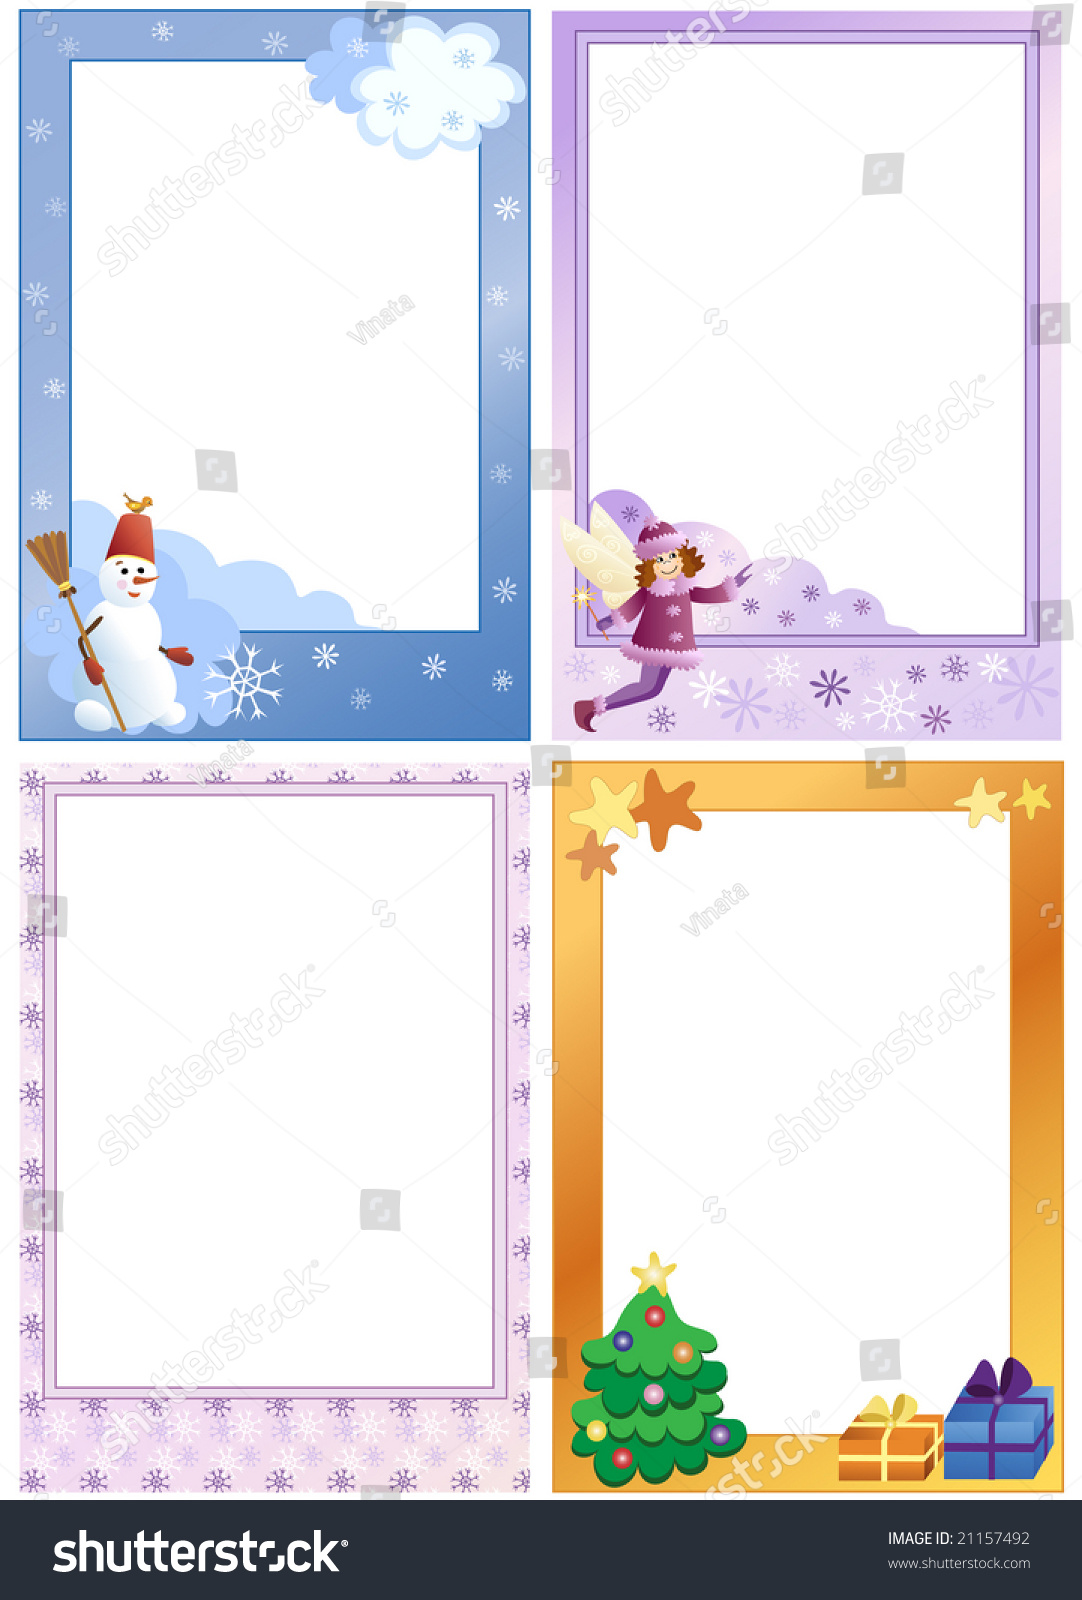 Photo Frames Kids Winter Theme Set Stock Vector 21157492 - Shutterstock